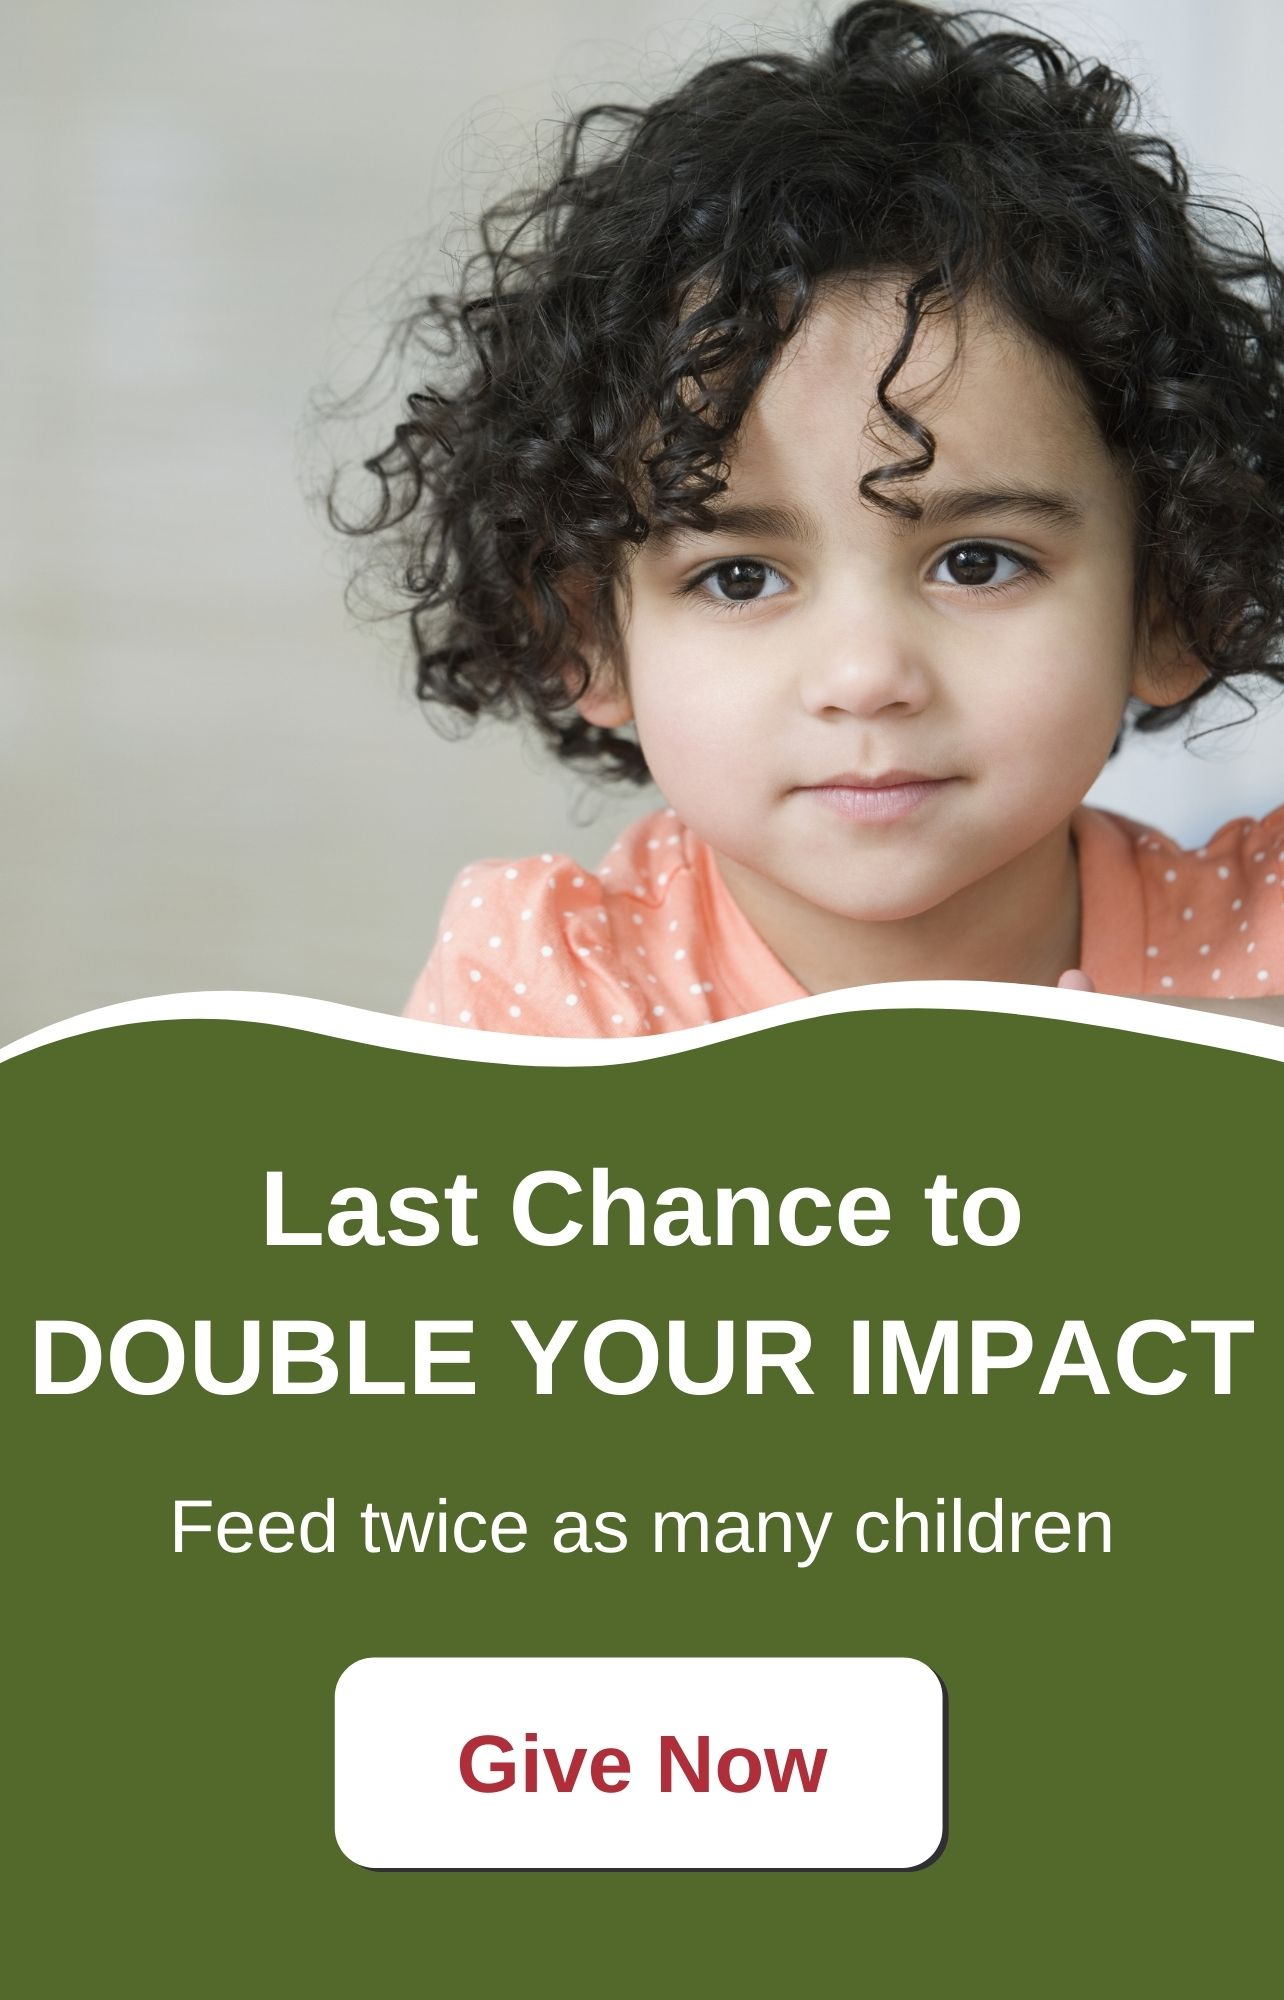 Last Chance to DOUBLE YOUR IMPACT